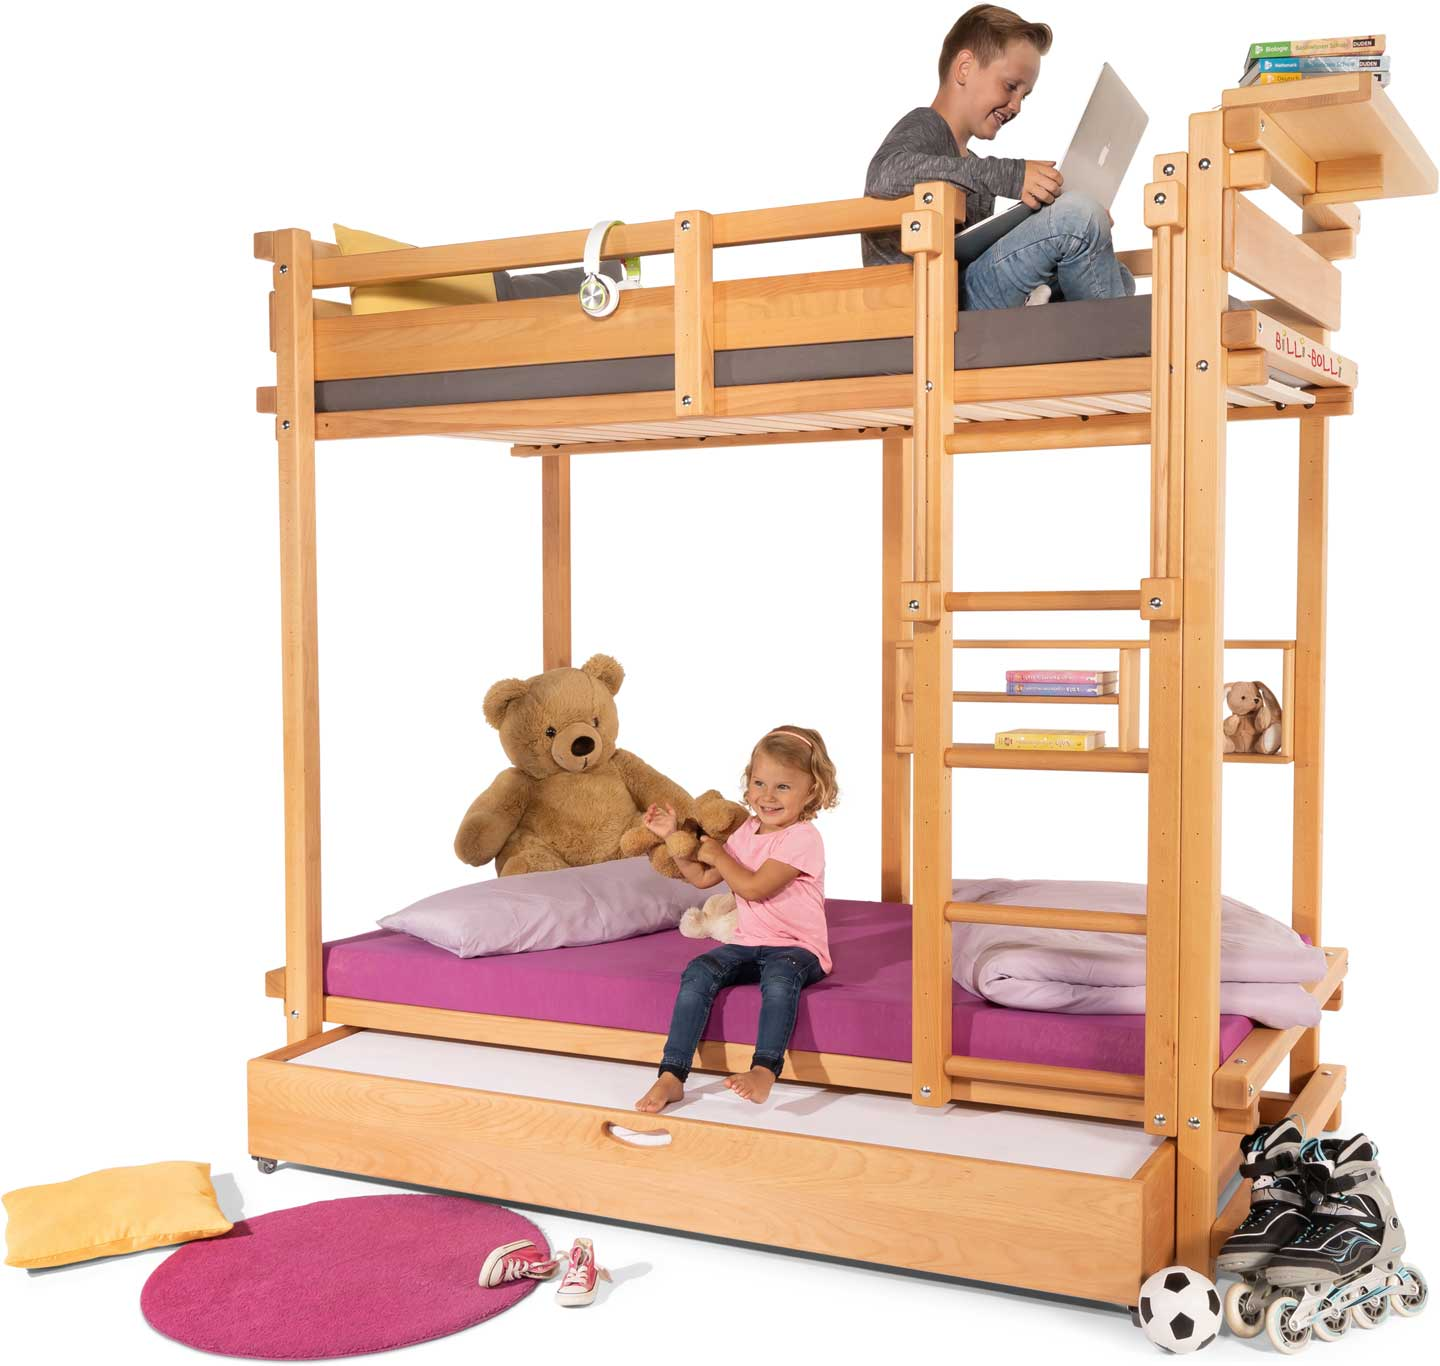 Youth Bunk Bed for older children (Kids' Beds)